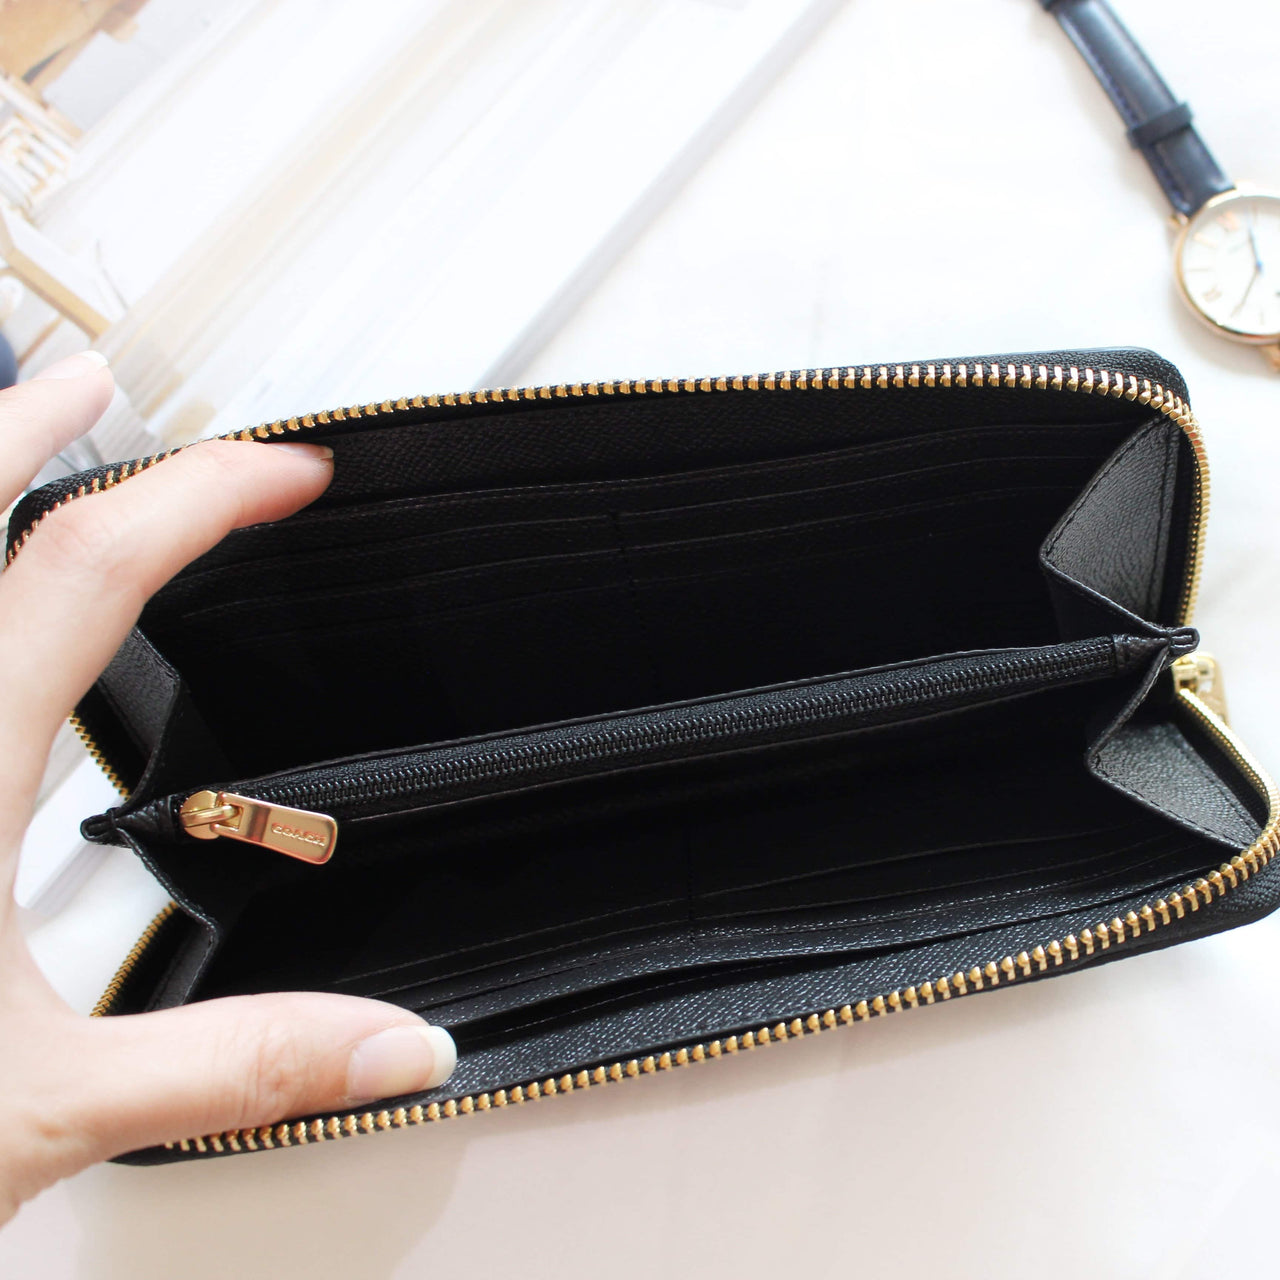 COACH ACCORDION ZIP WALLET IN POLISHED PEBBLE LEATHER - LovelyMadness Clothing Online Fashion Malaysia